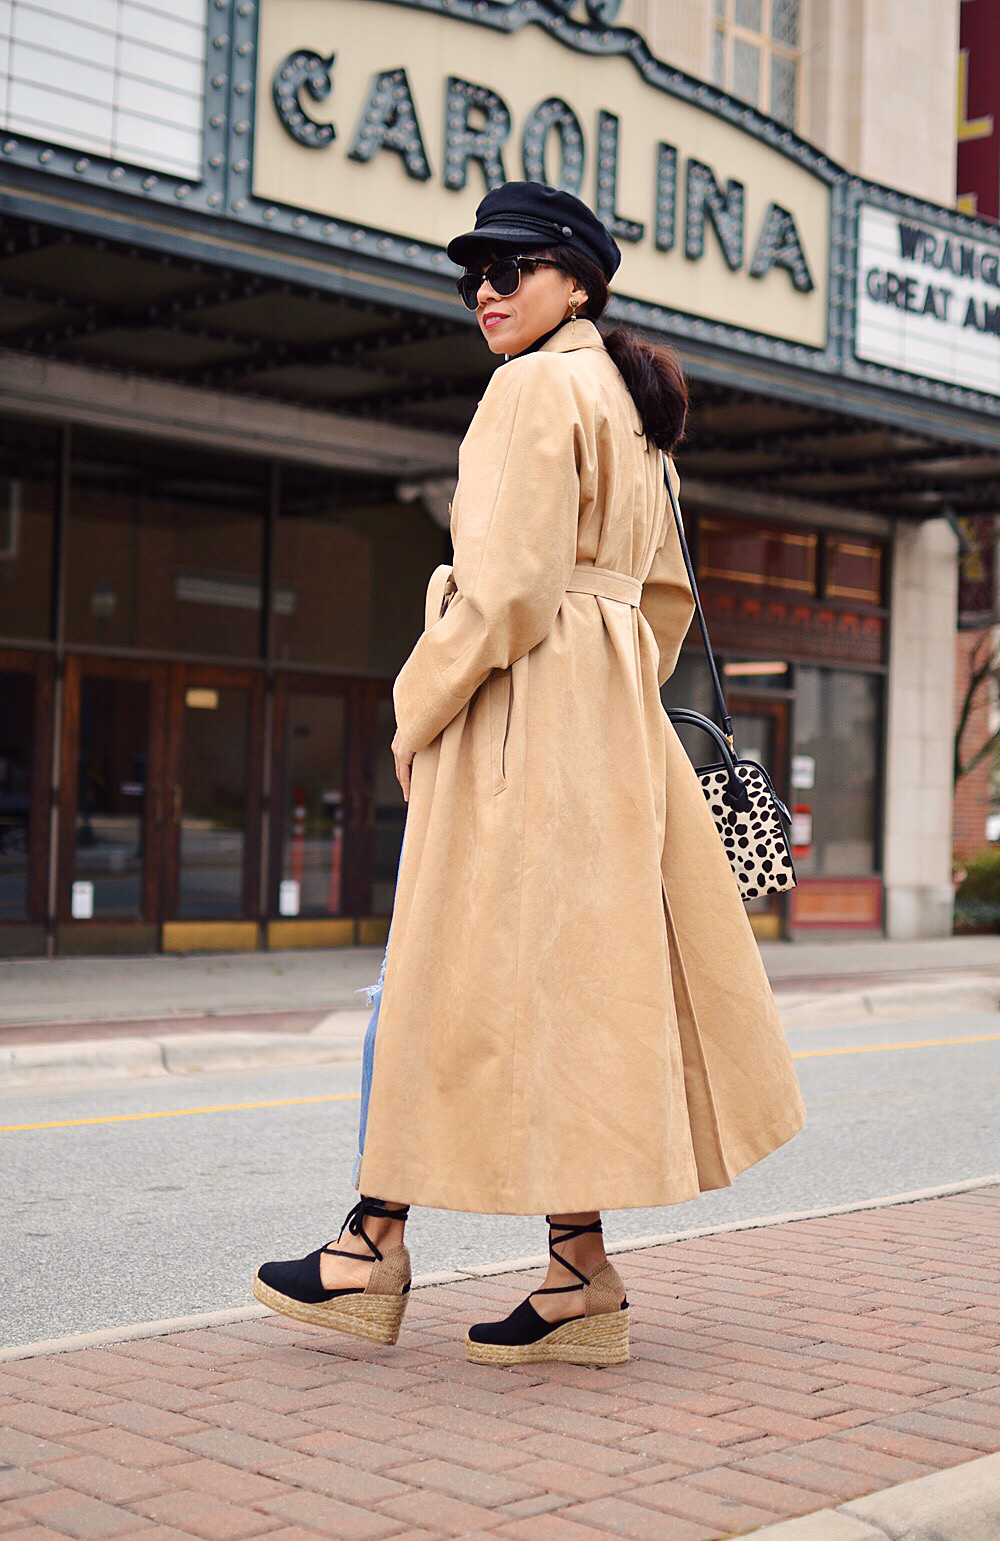 Suede coat street style